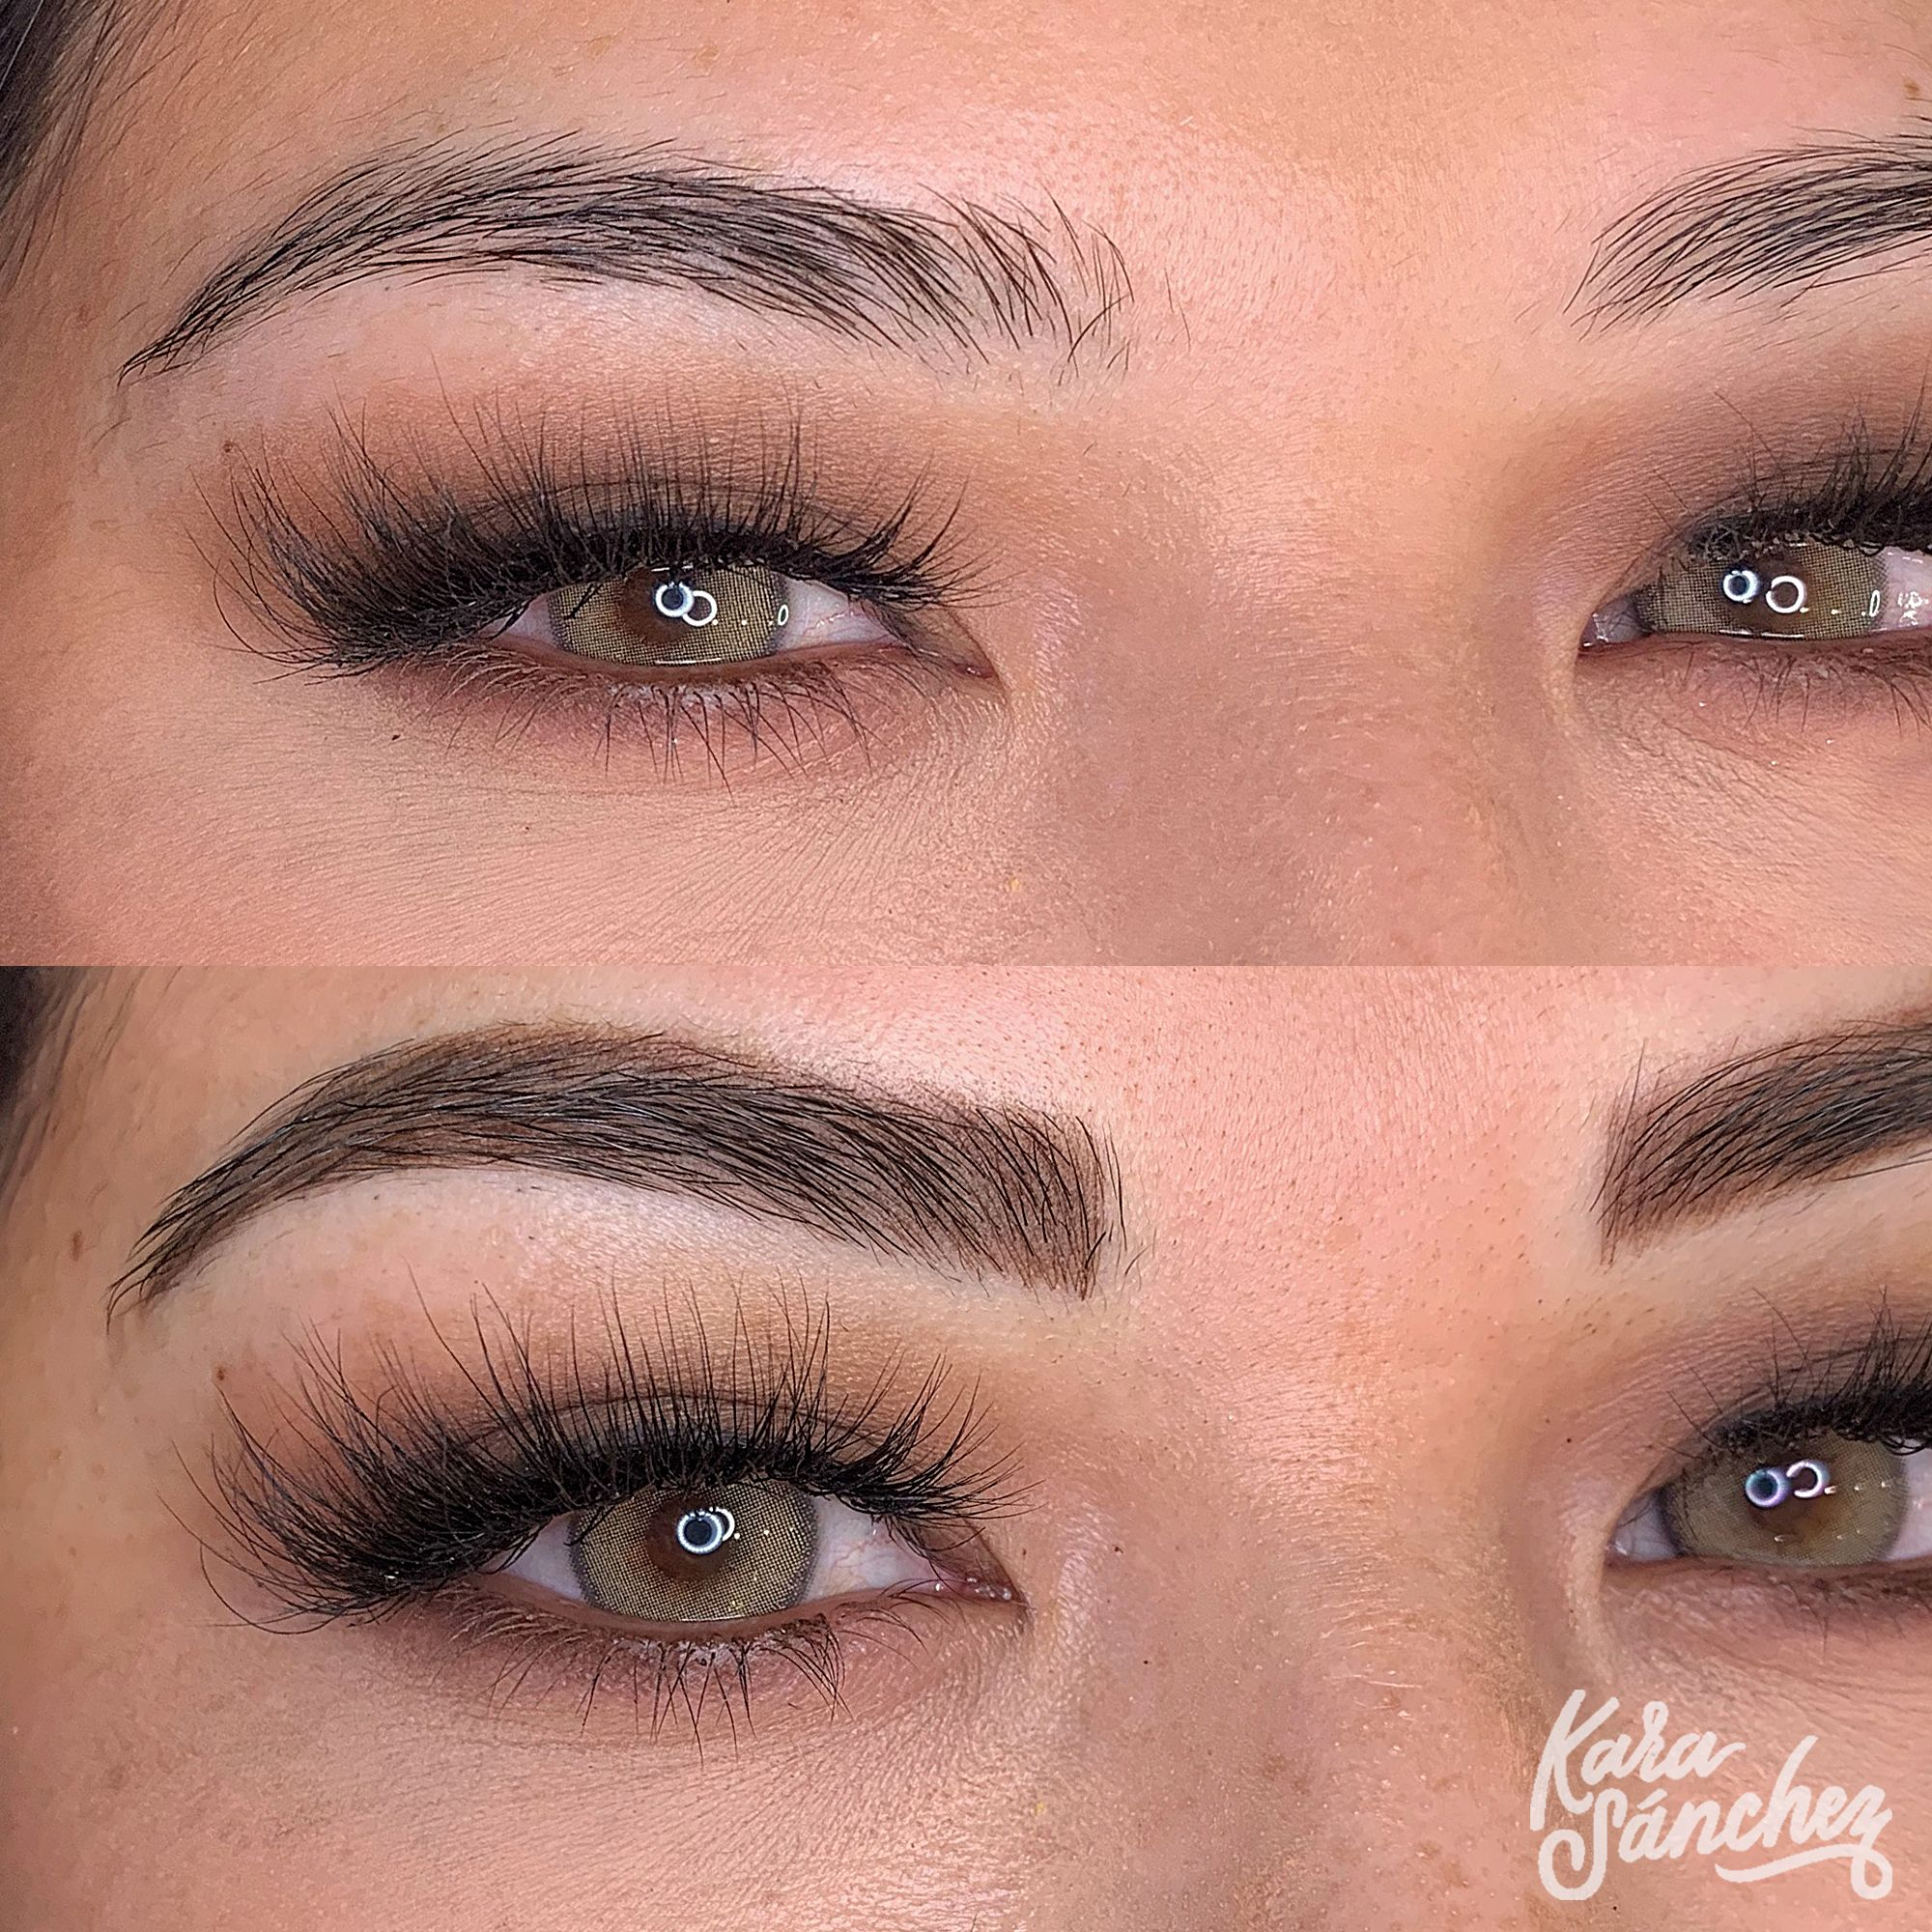 Pin on MICROBLADING before & after